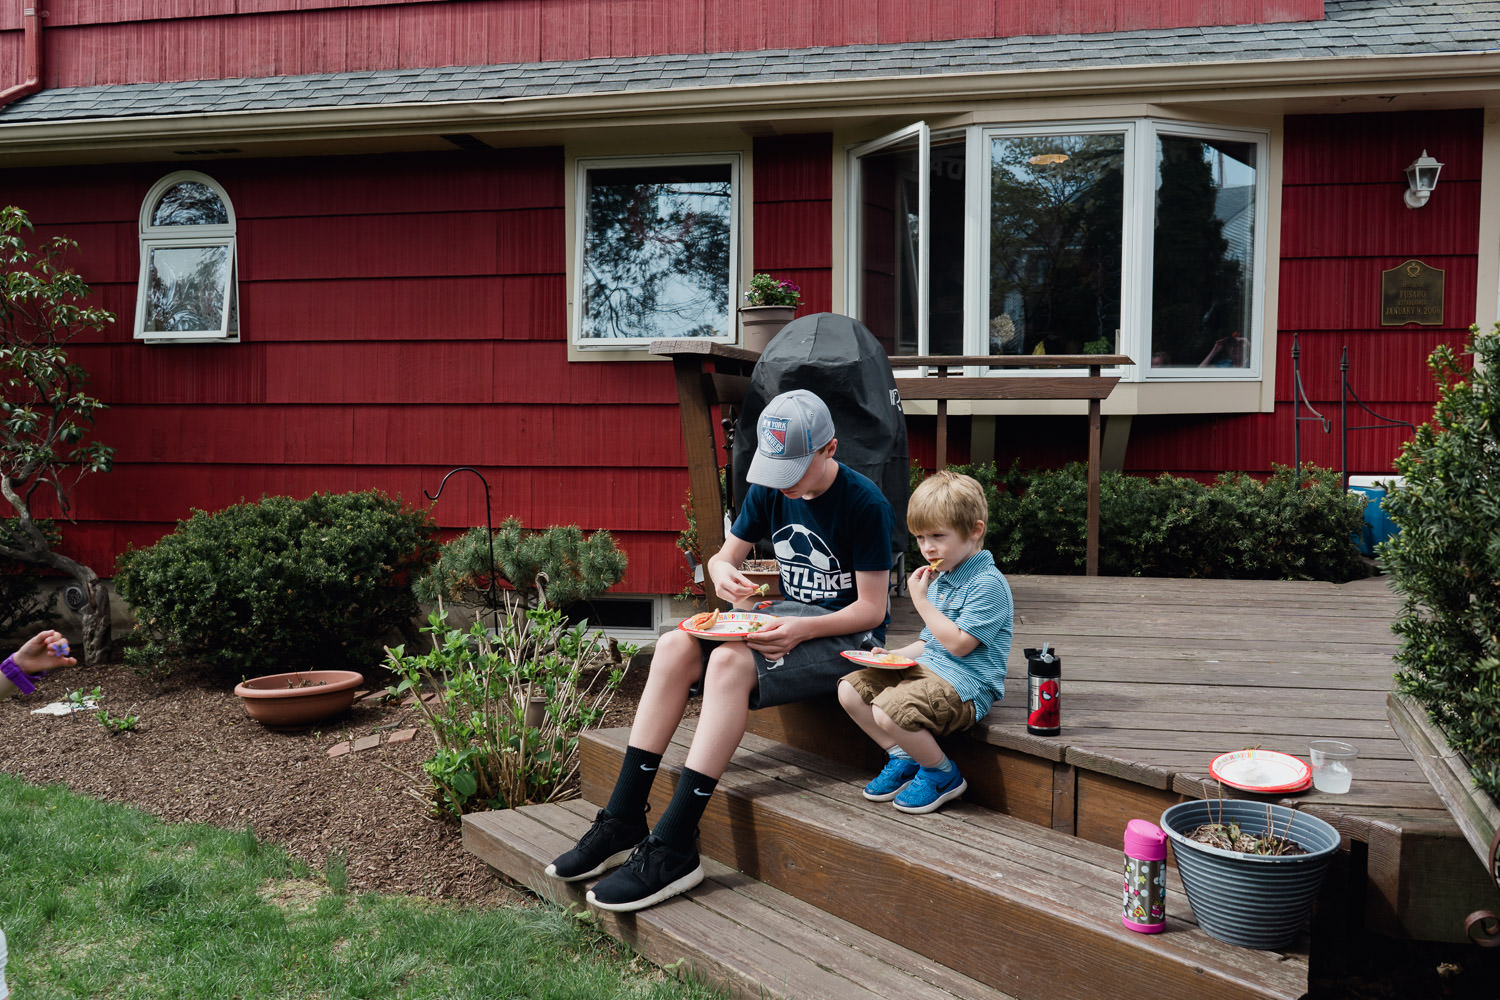 A boy and a toddler sit on some steps and eat a snack.